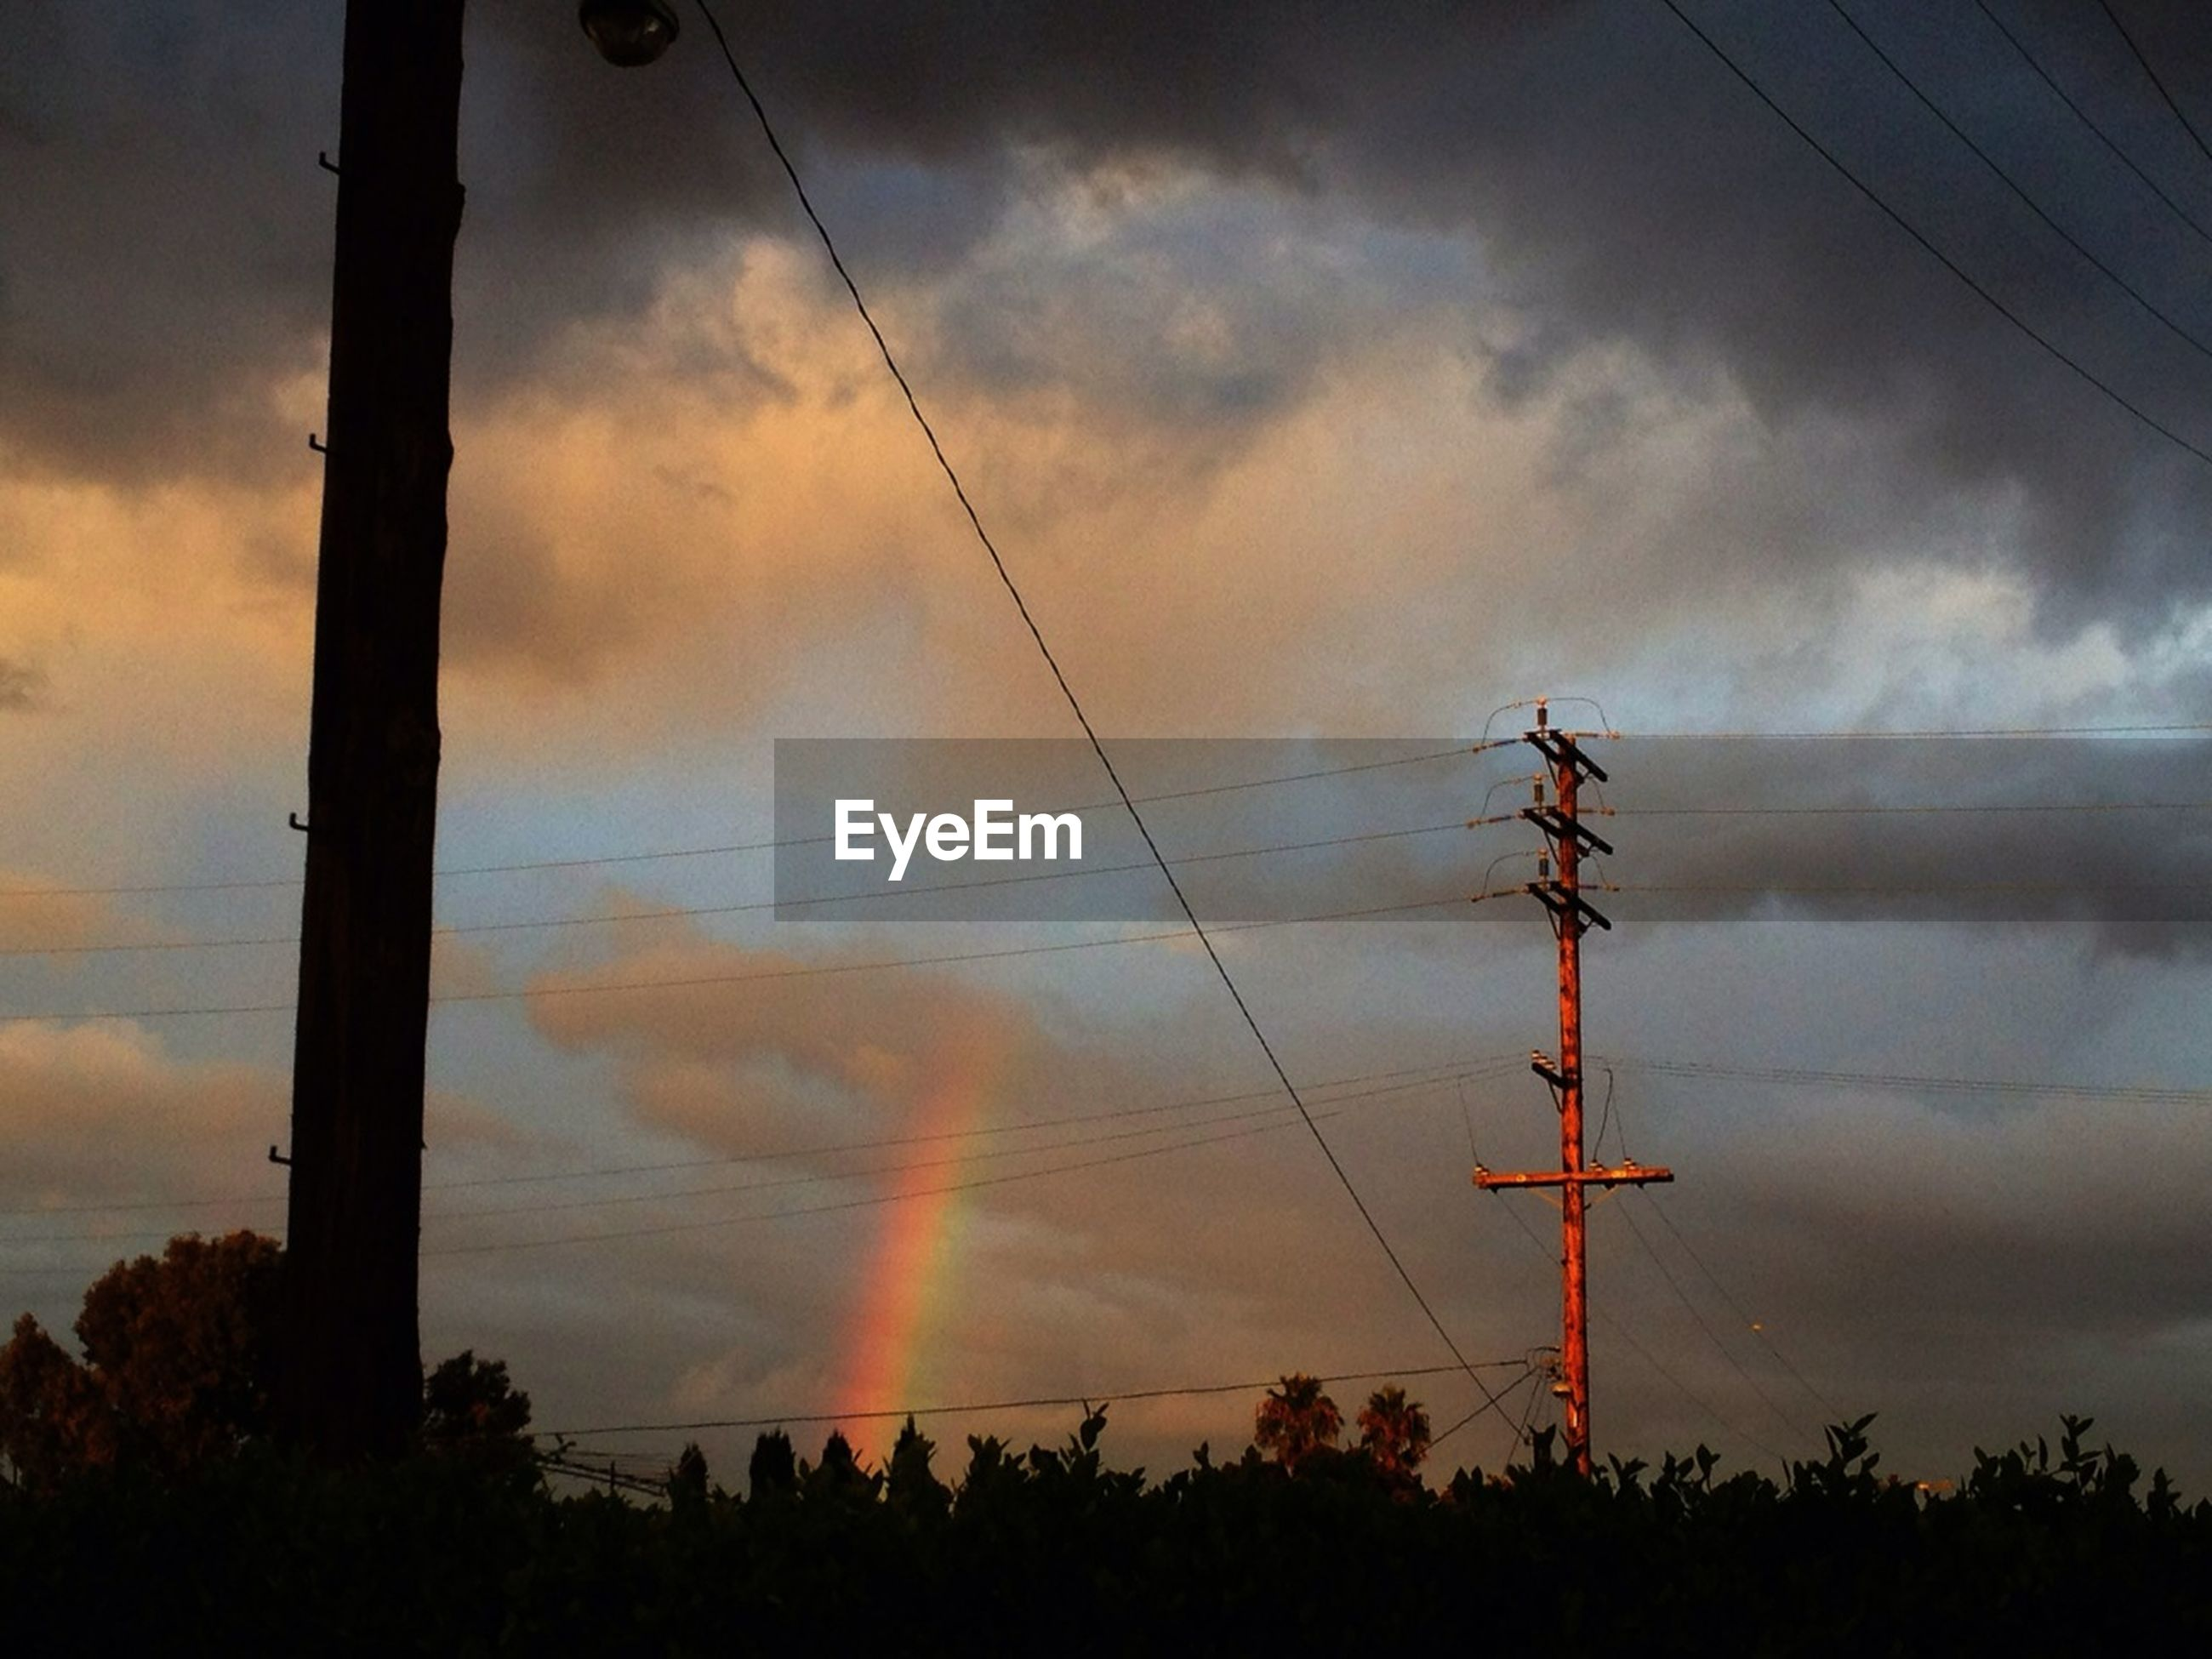 Low angle view of electricity pylon against cloudy sky at dusk